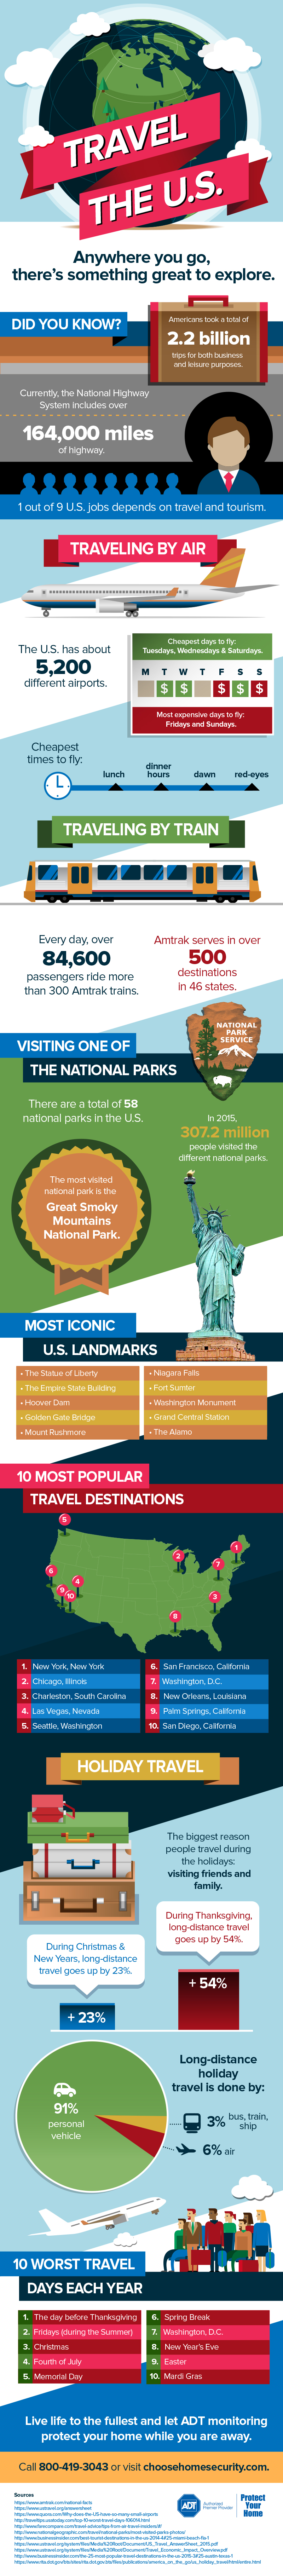 United States Travel Facts